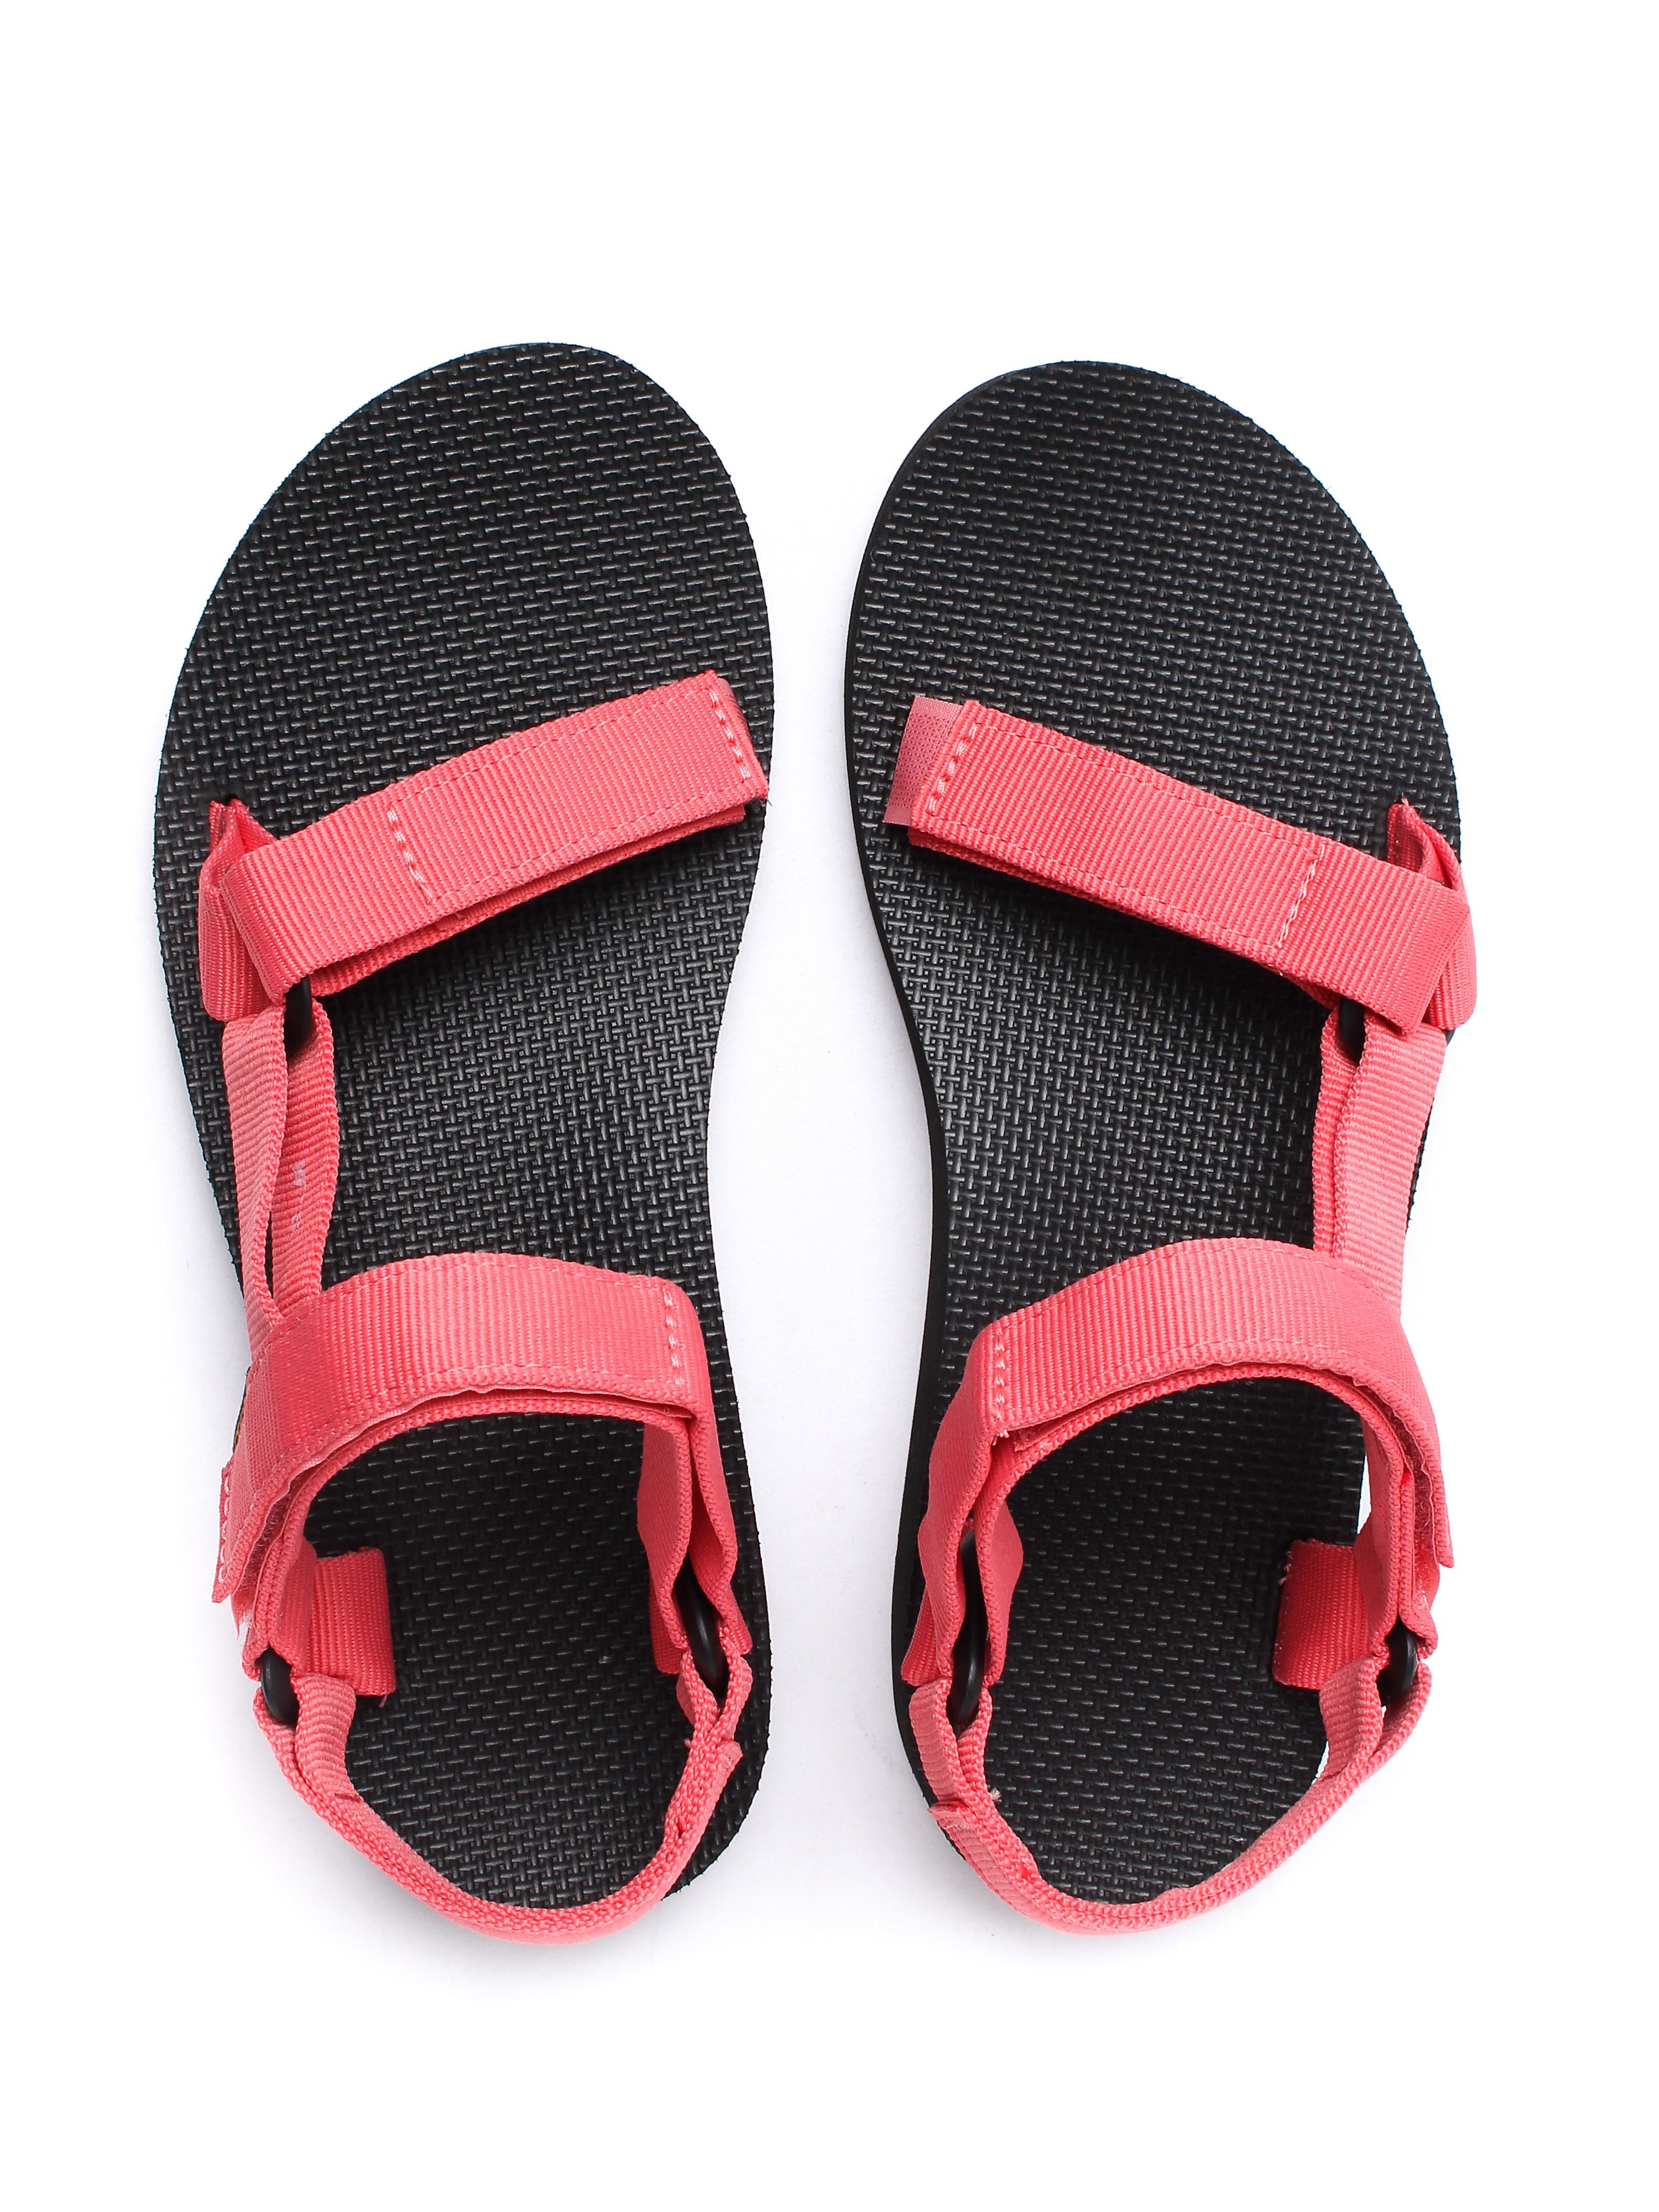 Teva Women's Original Universal Sandals - Deep Sea Coral